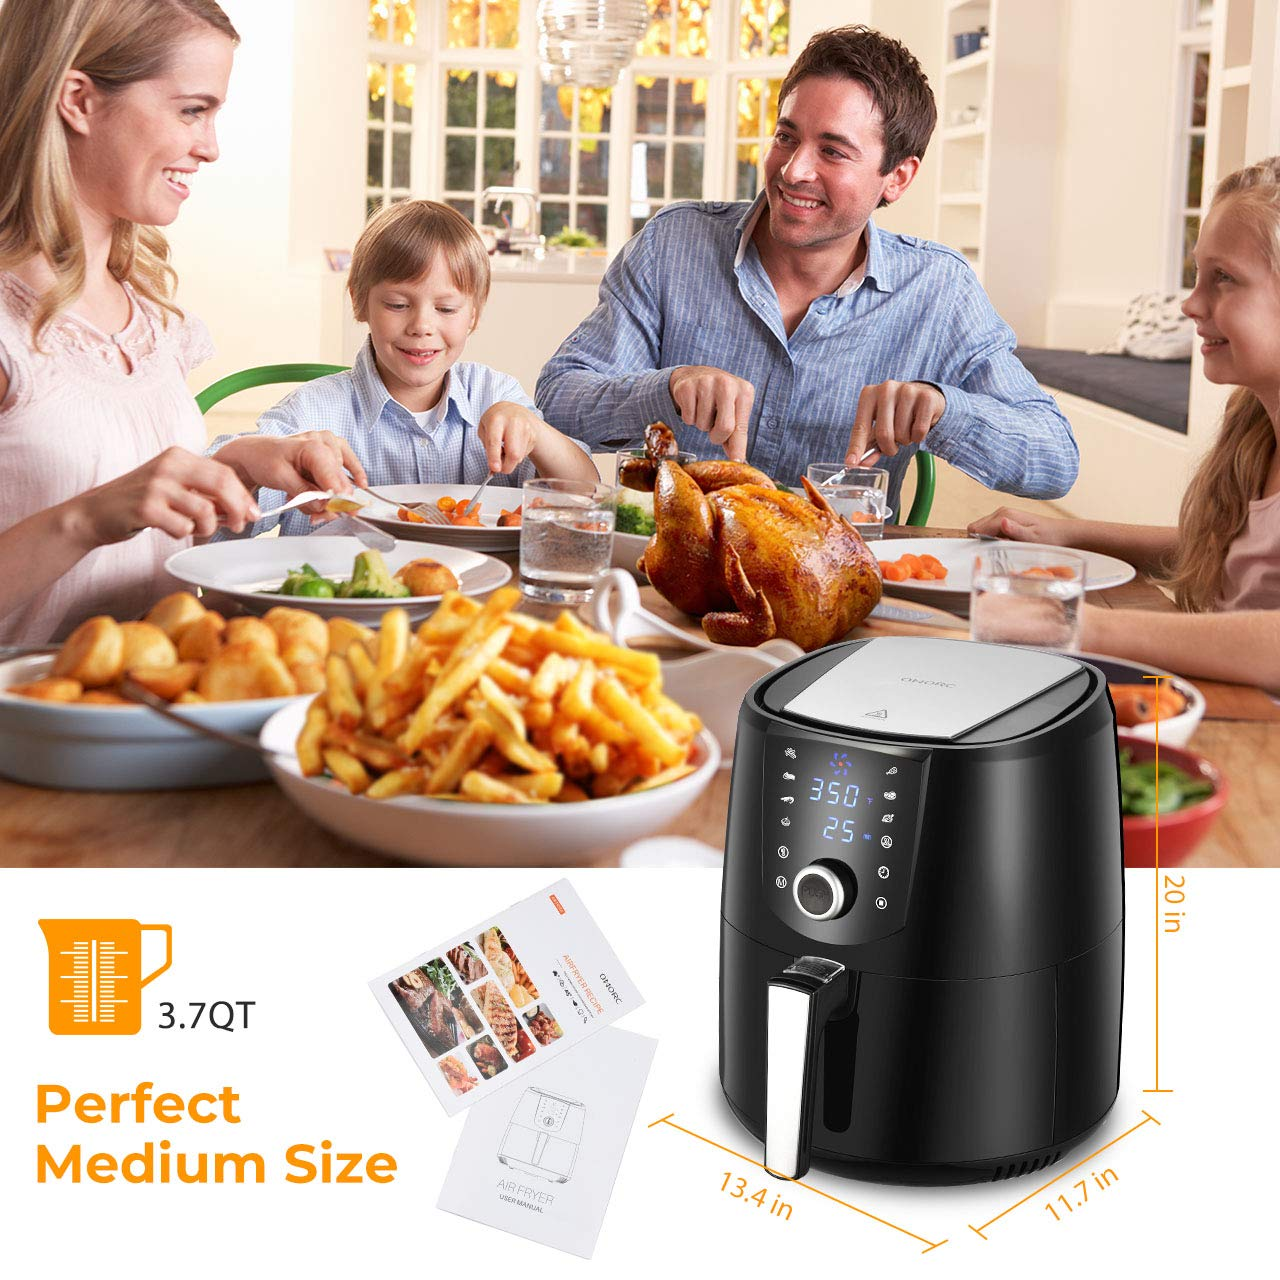 w//Cookbook Upgraded OMORC Air Fryer Keep Warm Digital Oilless Cooker w//Quick Knob /& Touch Screen 3.8QT 2-Year Warranty 8-15 Presets Detachable Non-Stick Dishwasher Safe Basket Hot Air Fryer Oven